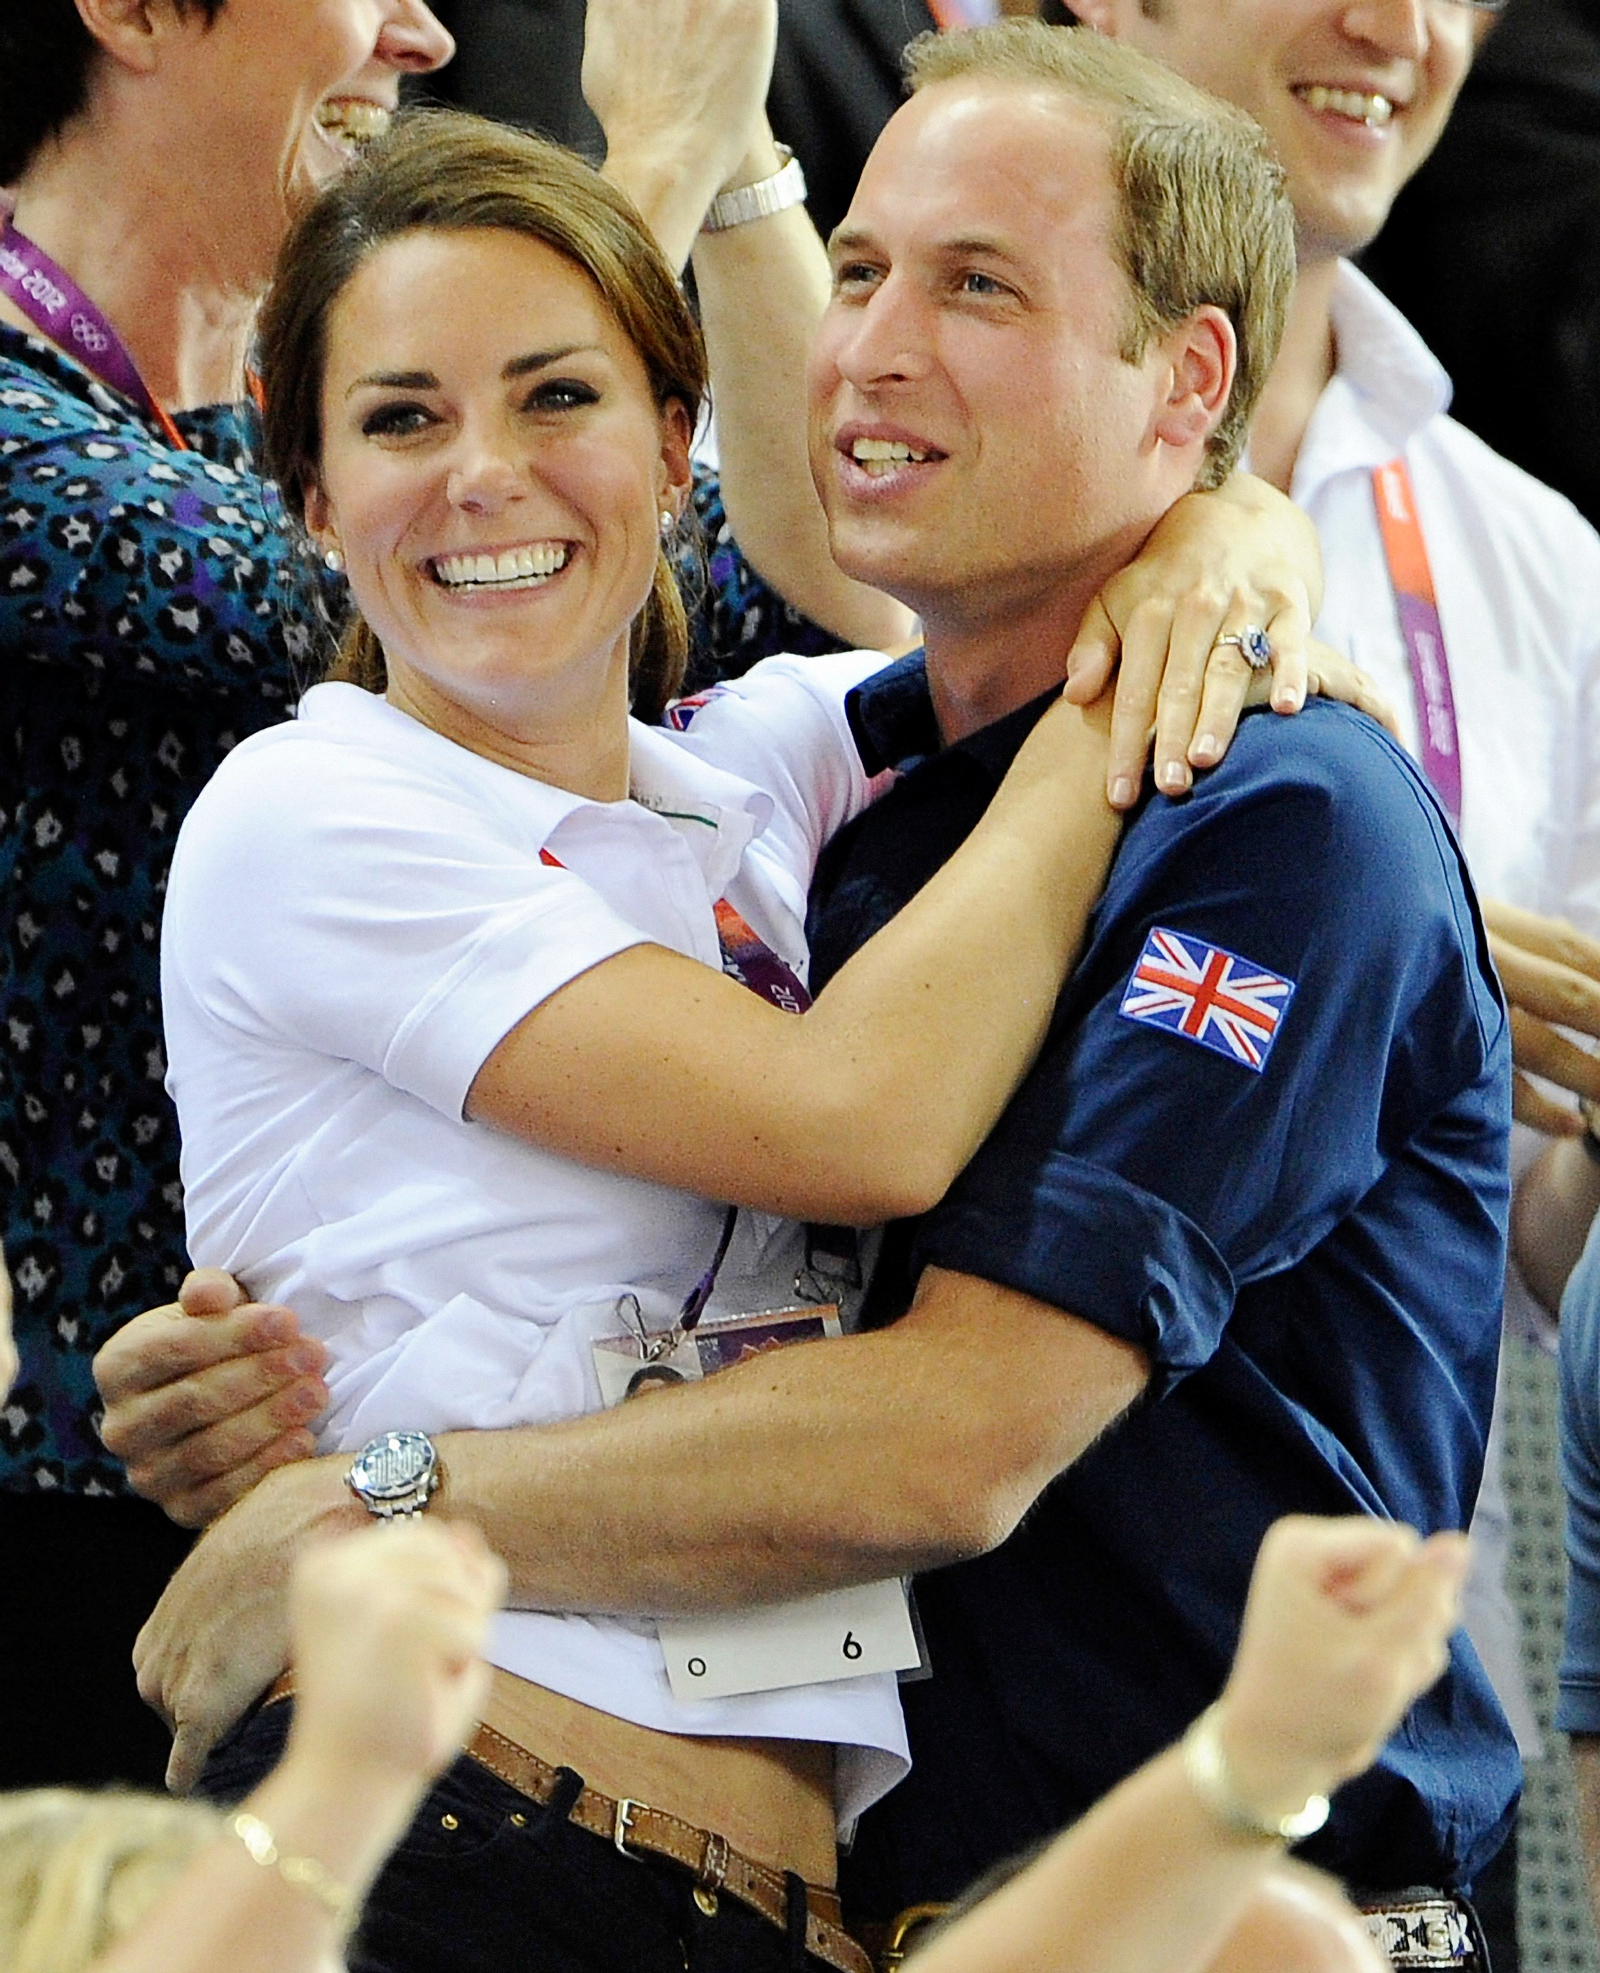 Just a casual embrace during the Olympics. Nothing to see here.